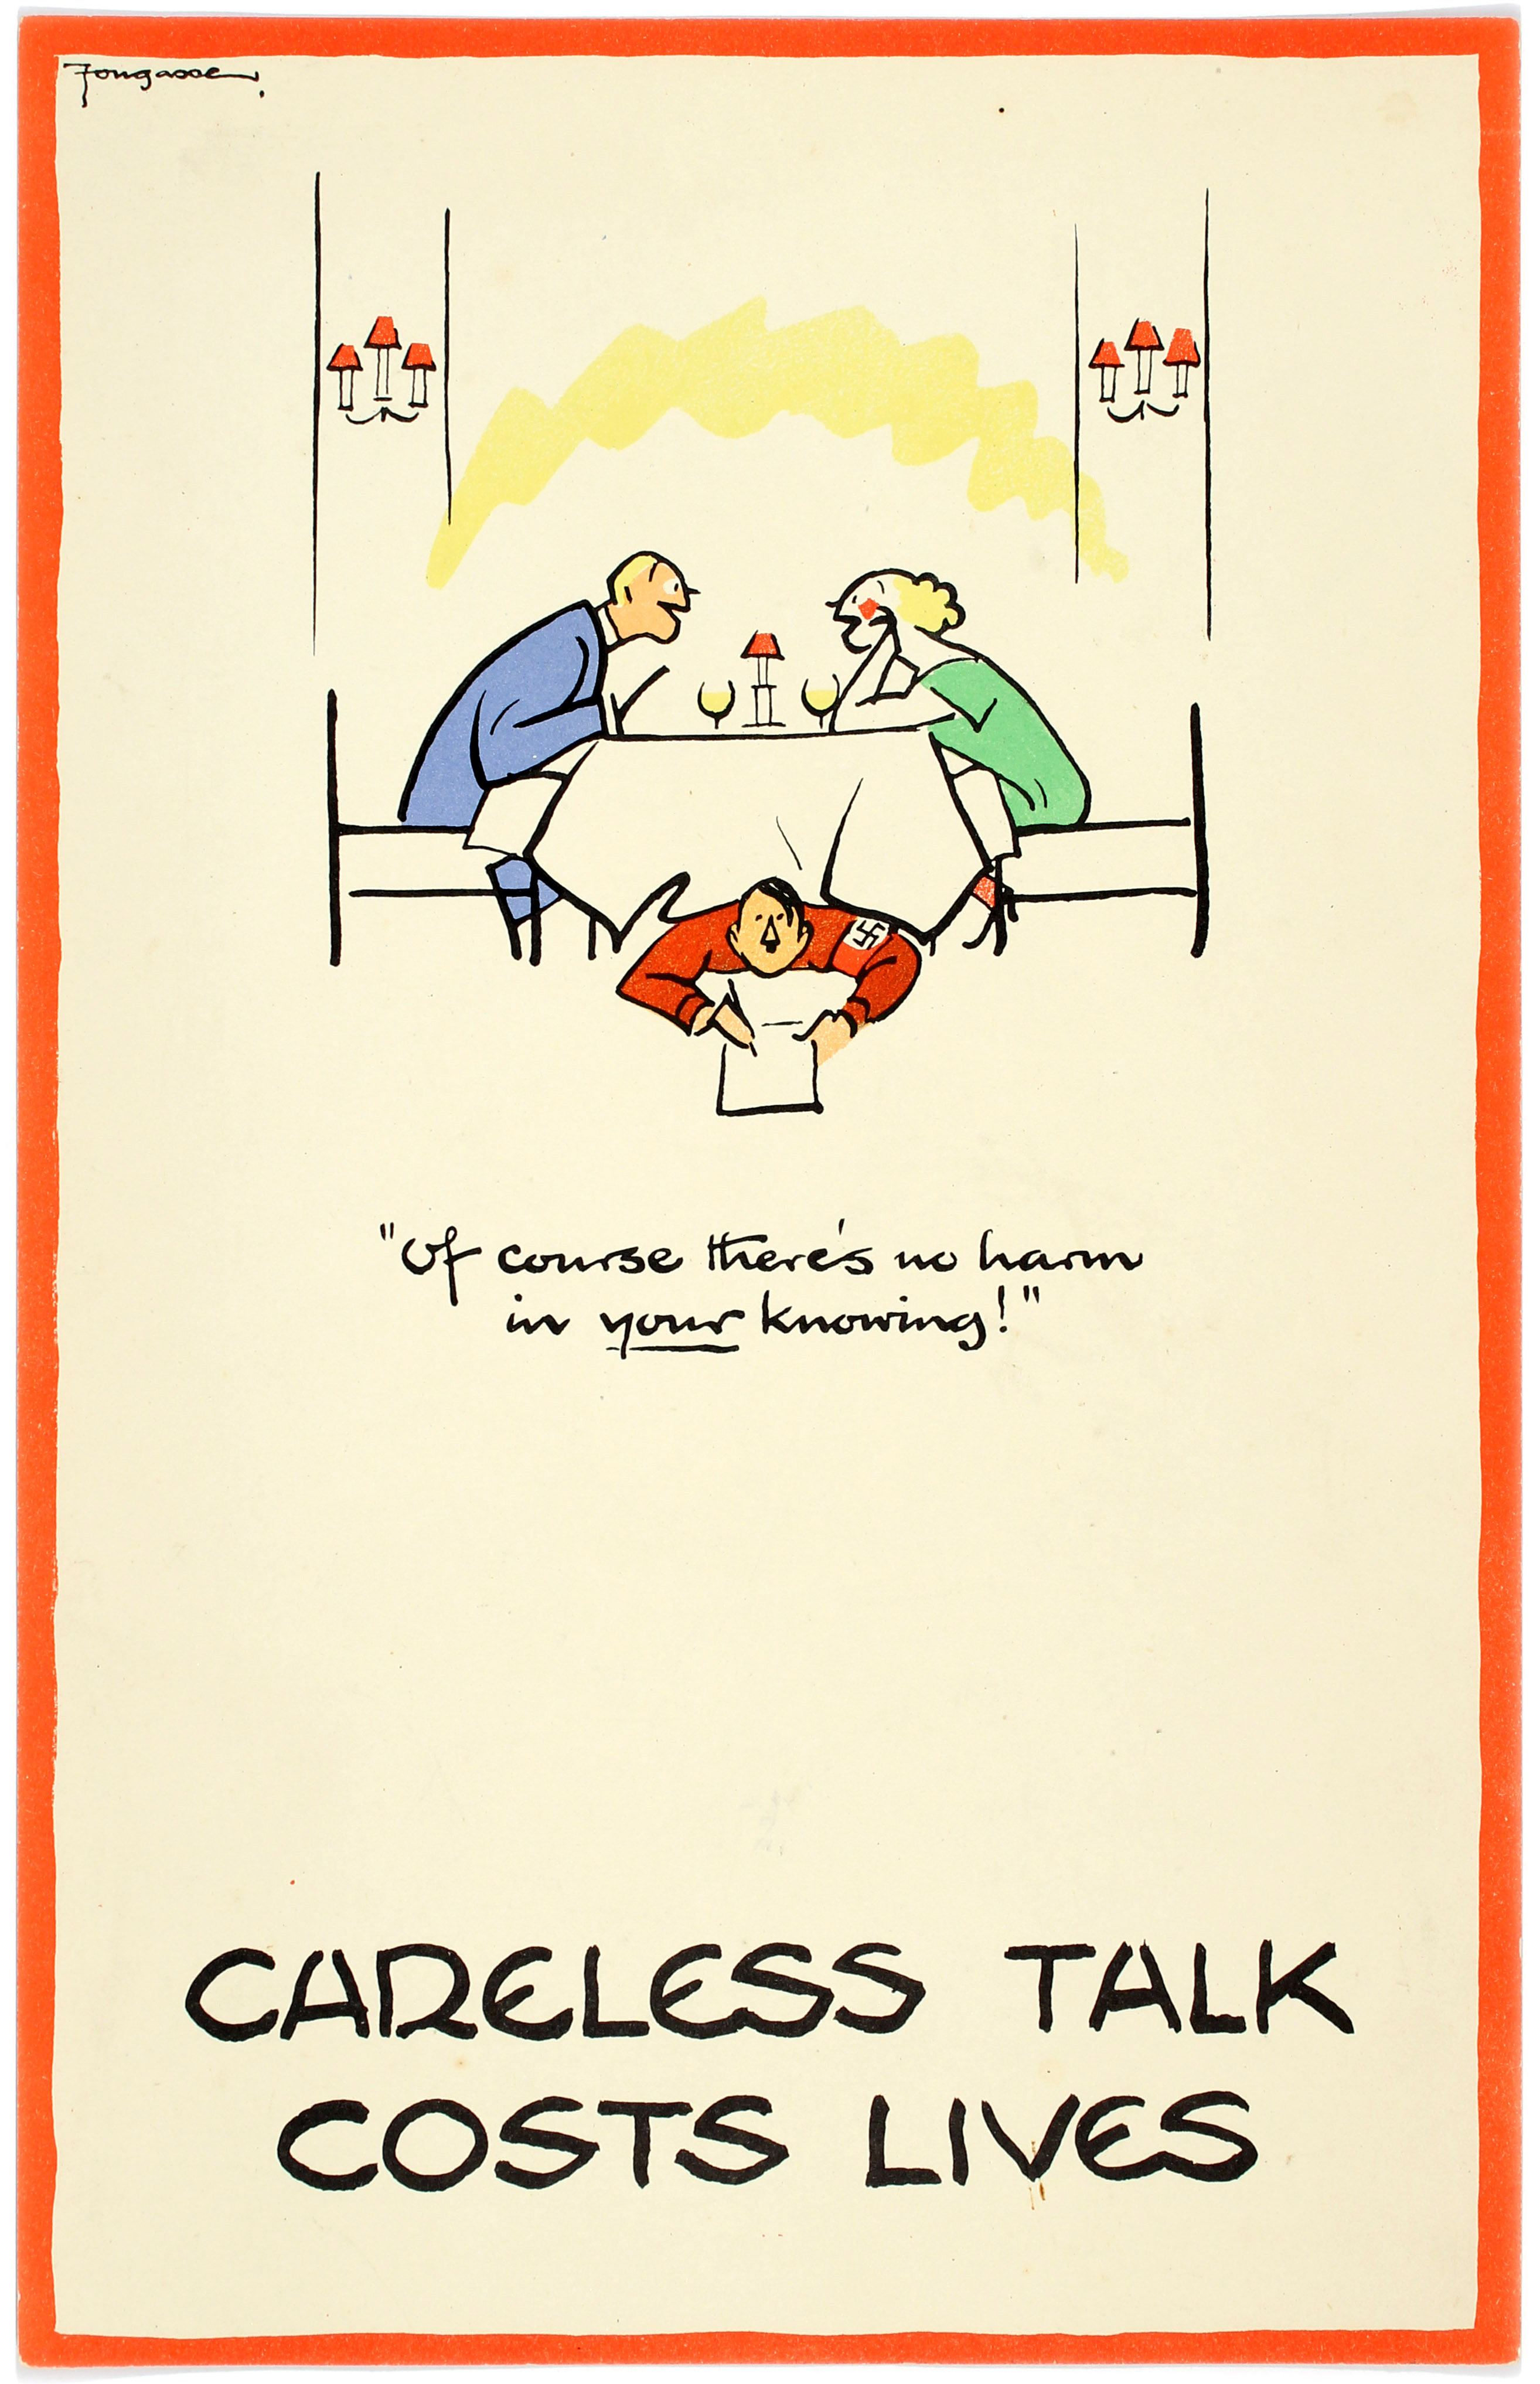 WWII Poster Careless Talk Fougasse Restaurant Of course theres no harm